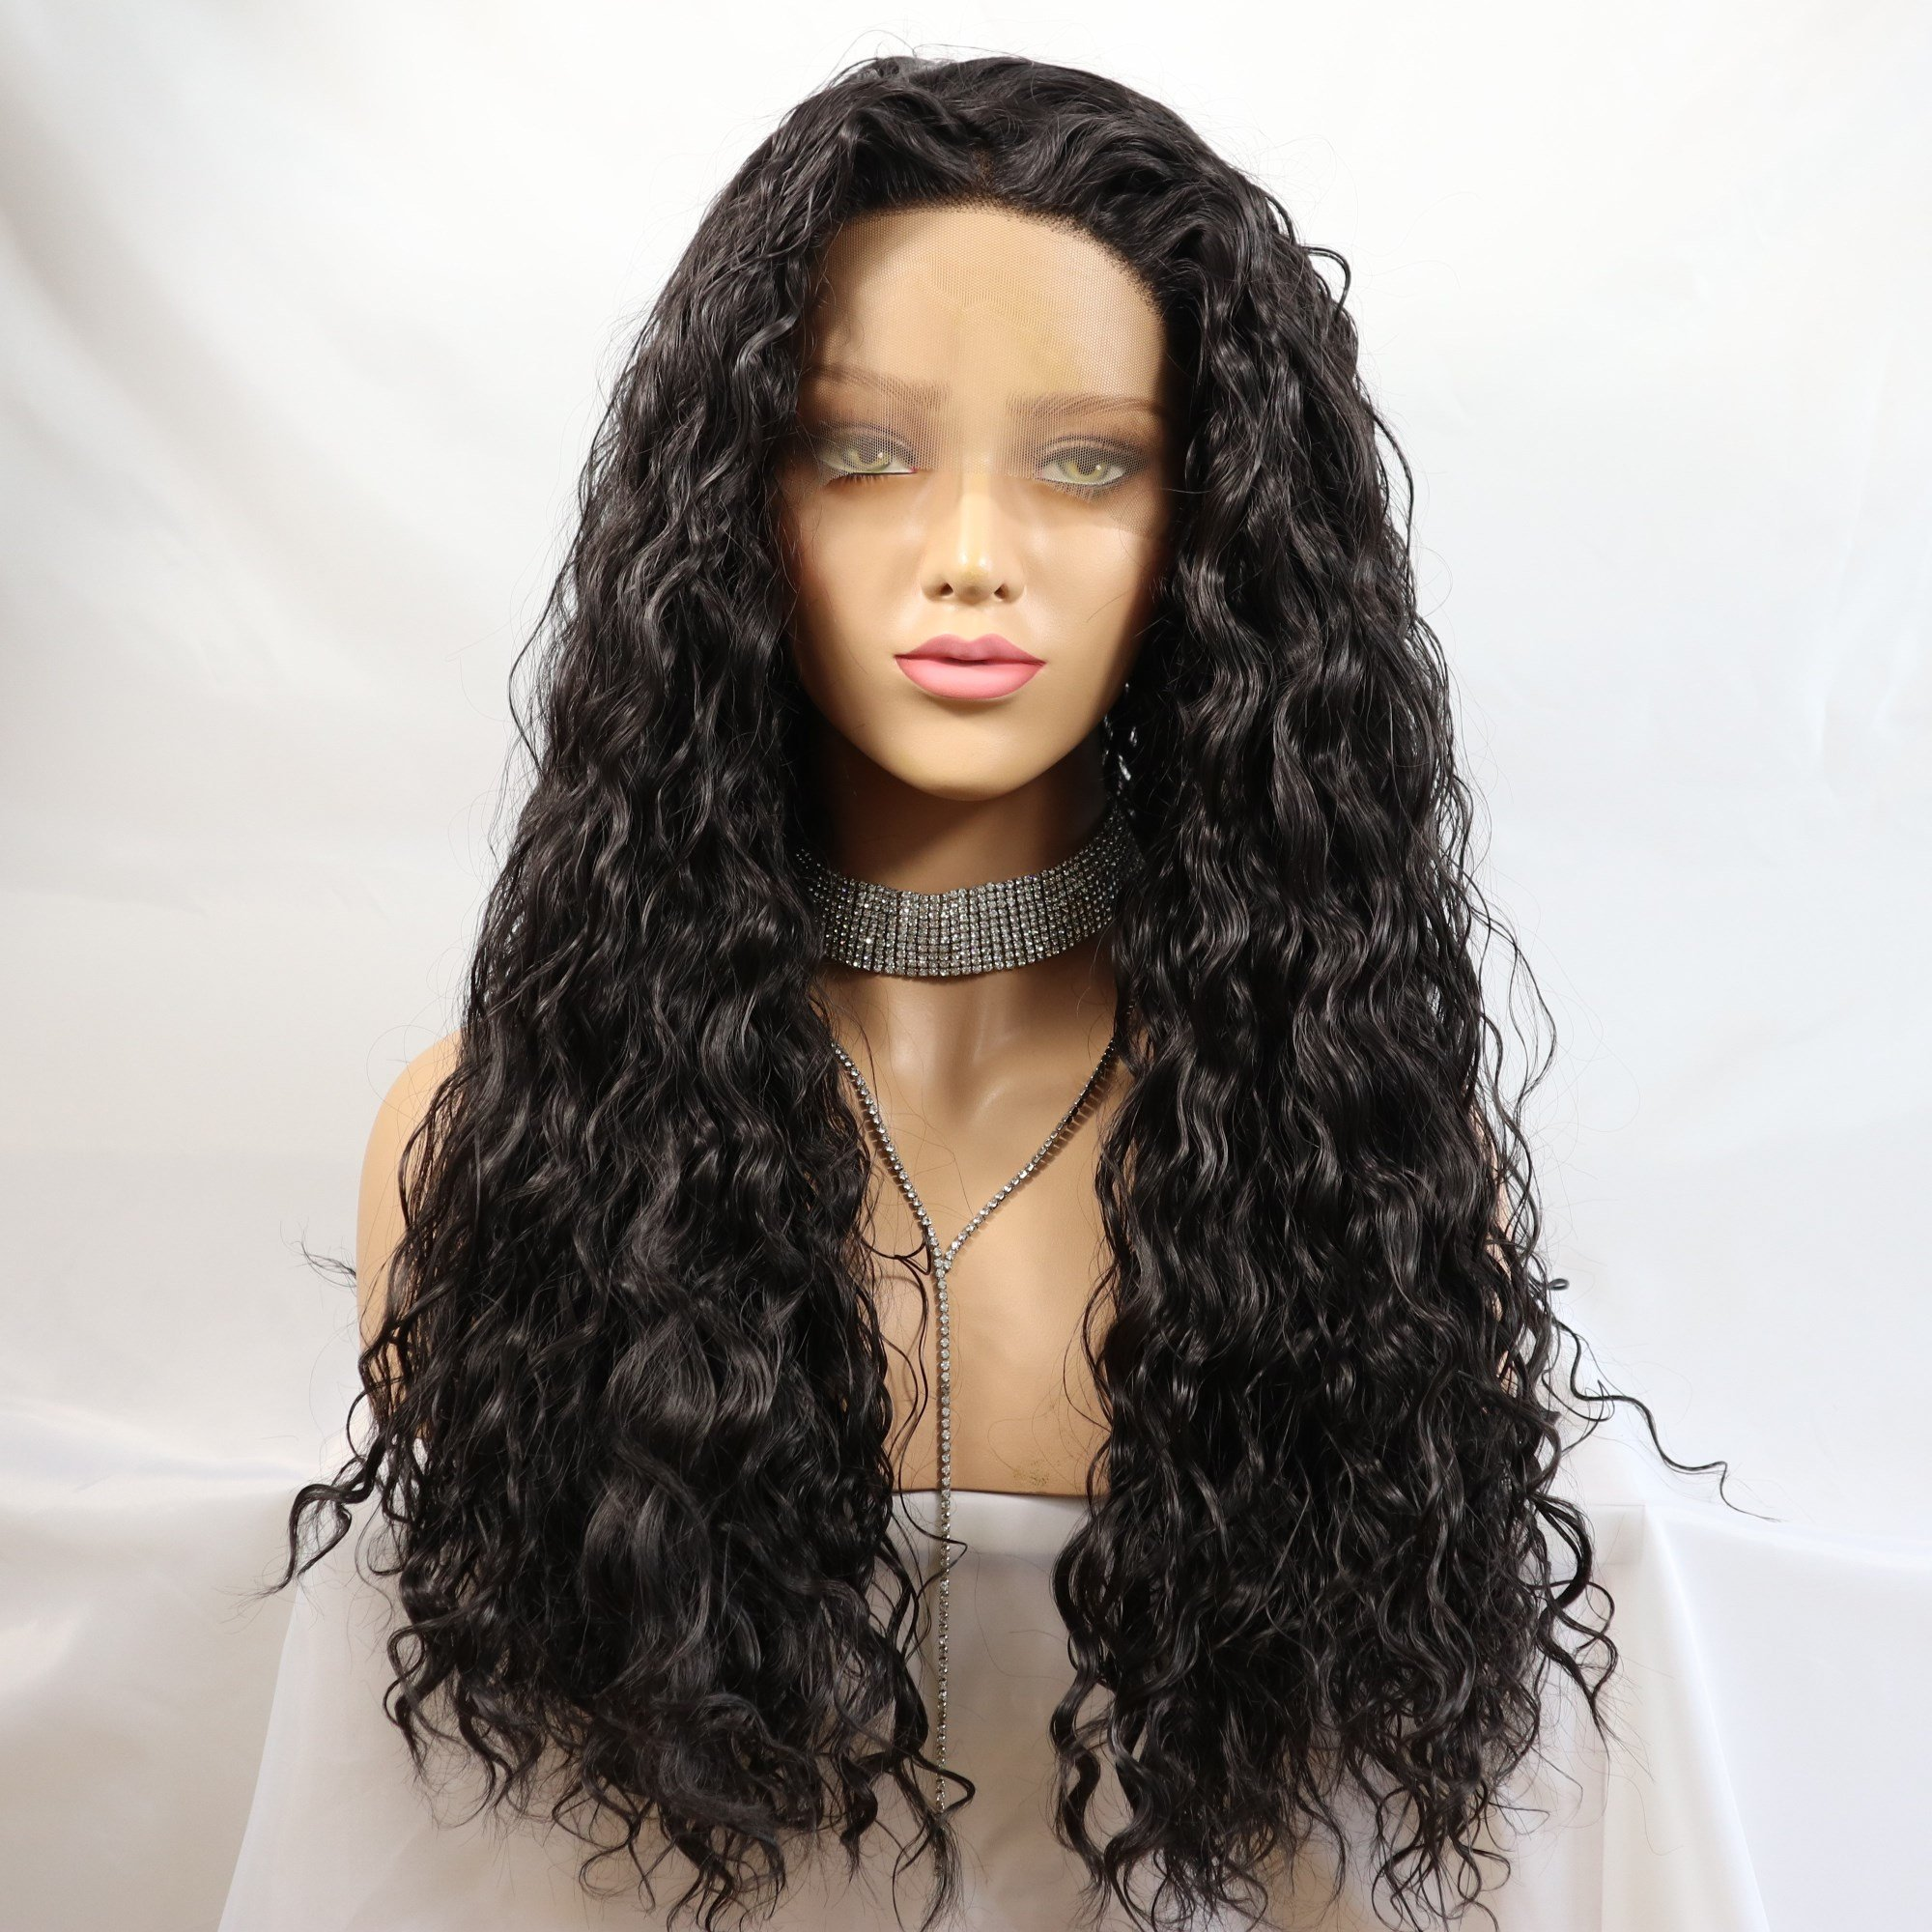 Meinod Loose Curly Synthetic Lace Front Wig Glueless Natural Looking Dark Brown Heat Resistant Fiber Hair Wigs For Women (color 2)